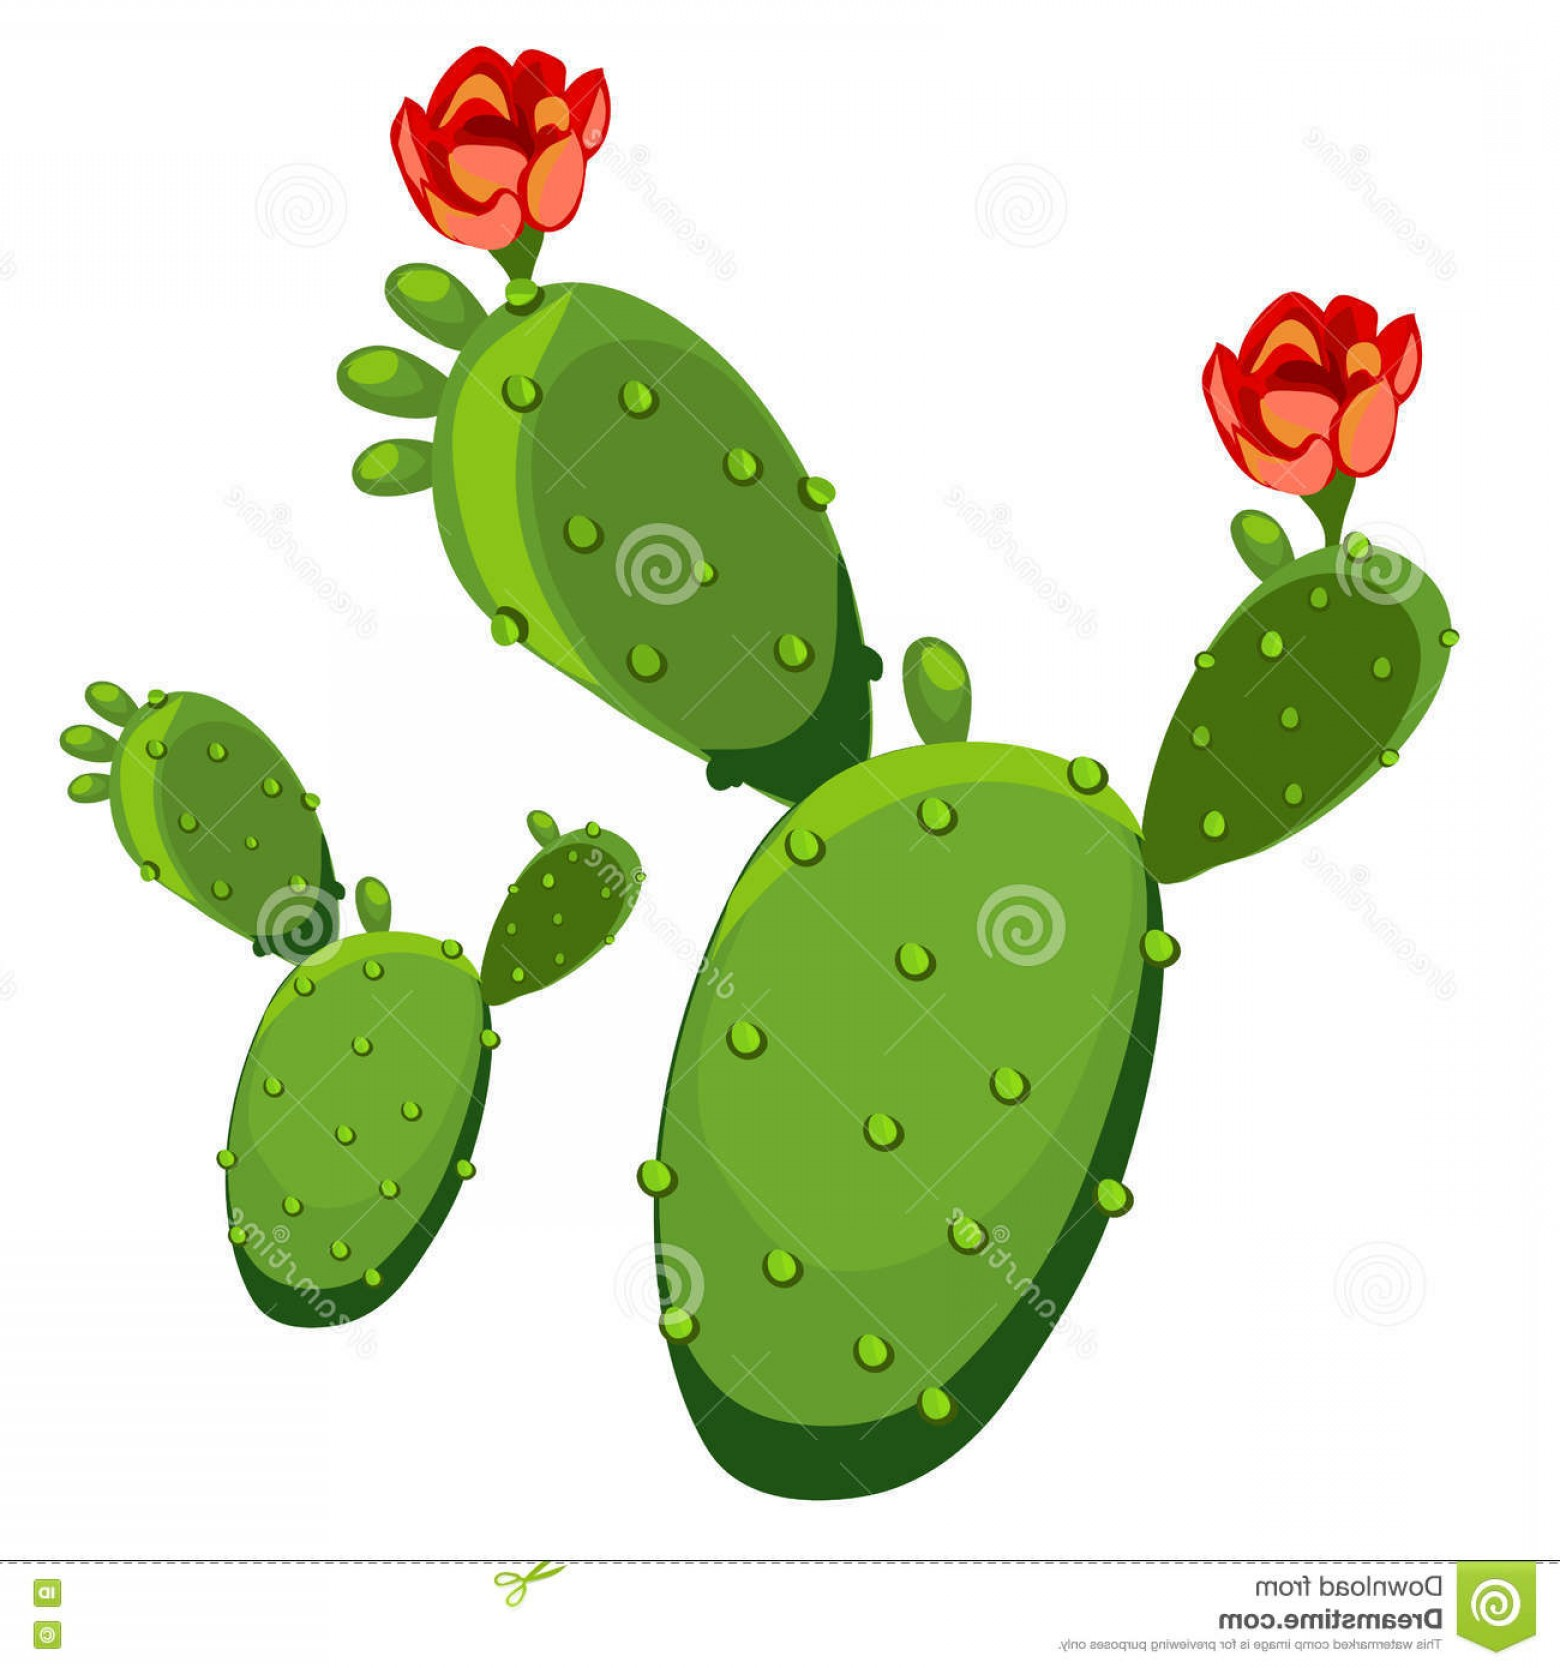 Cactus And Flower Vector: Stock Illustration Cactus Flower Vector Illustration Isolated White Background Your Design Needs Image